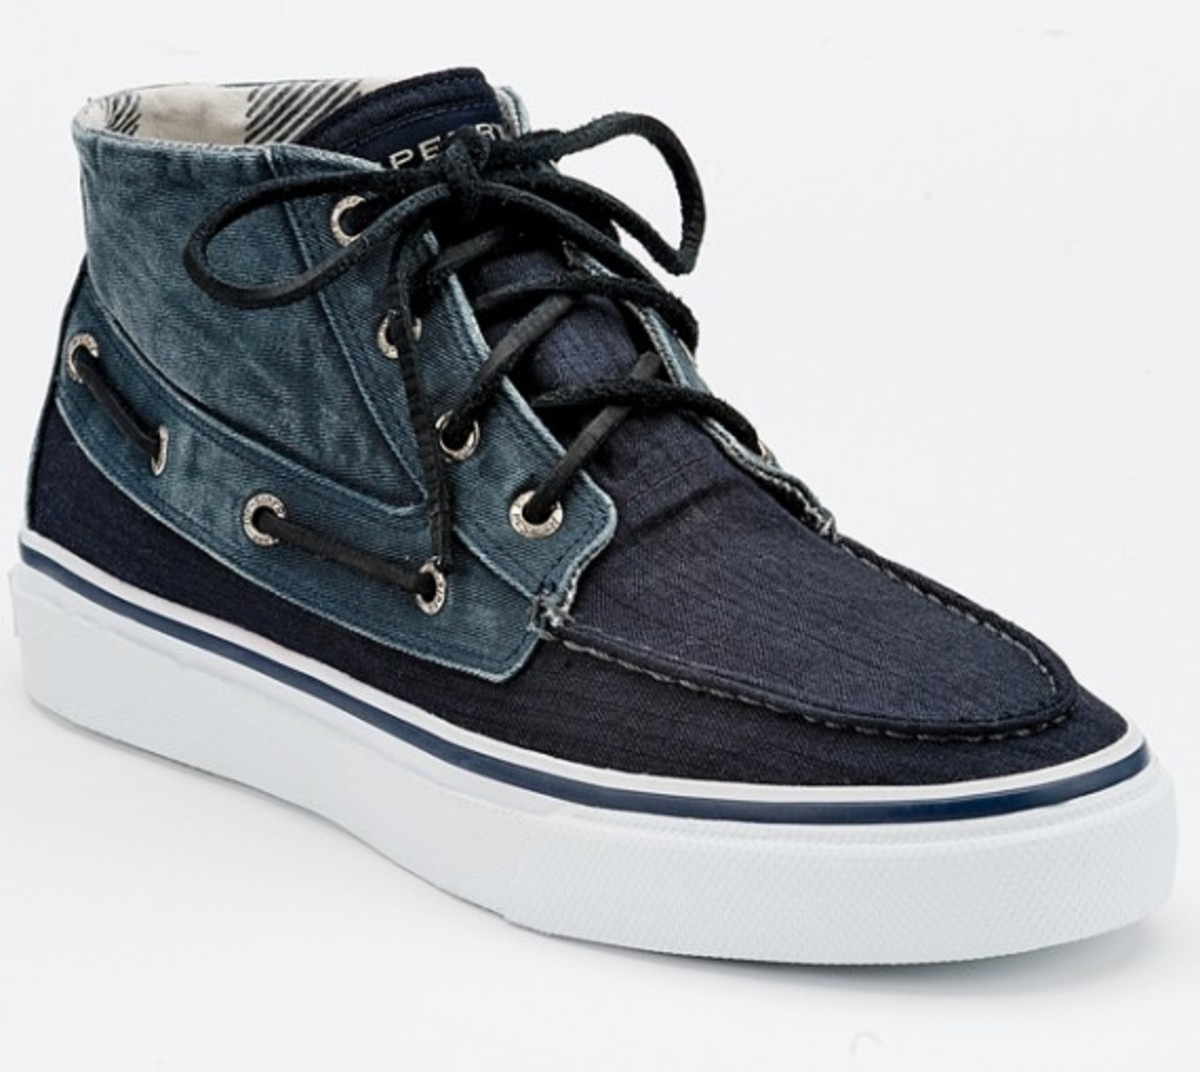 sperry_topsider_ss2010_11